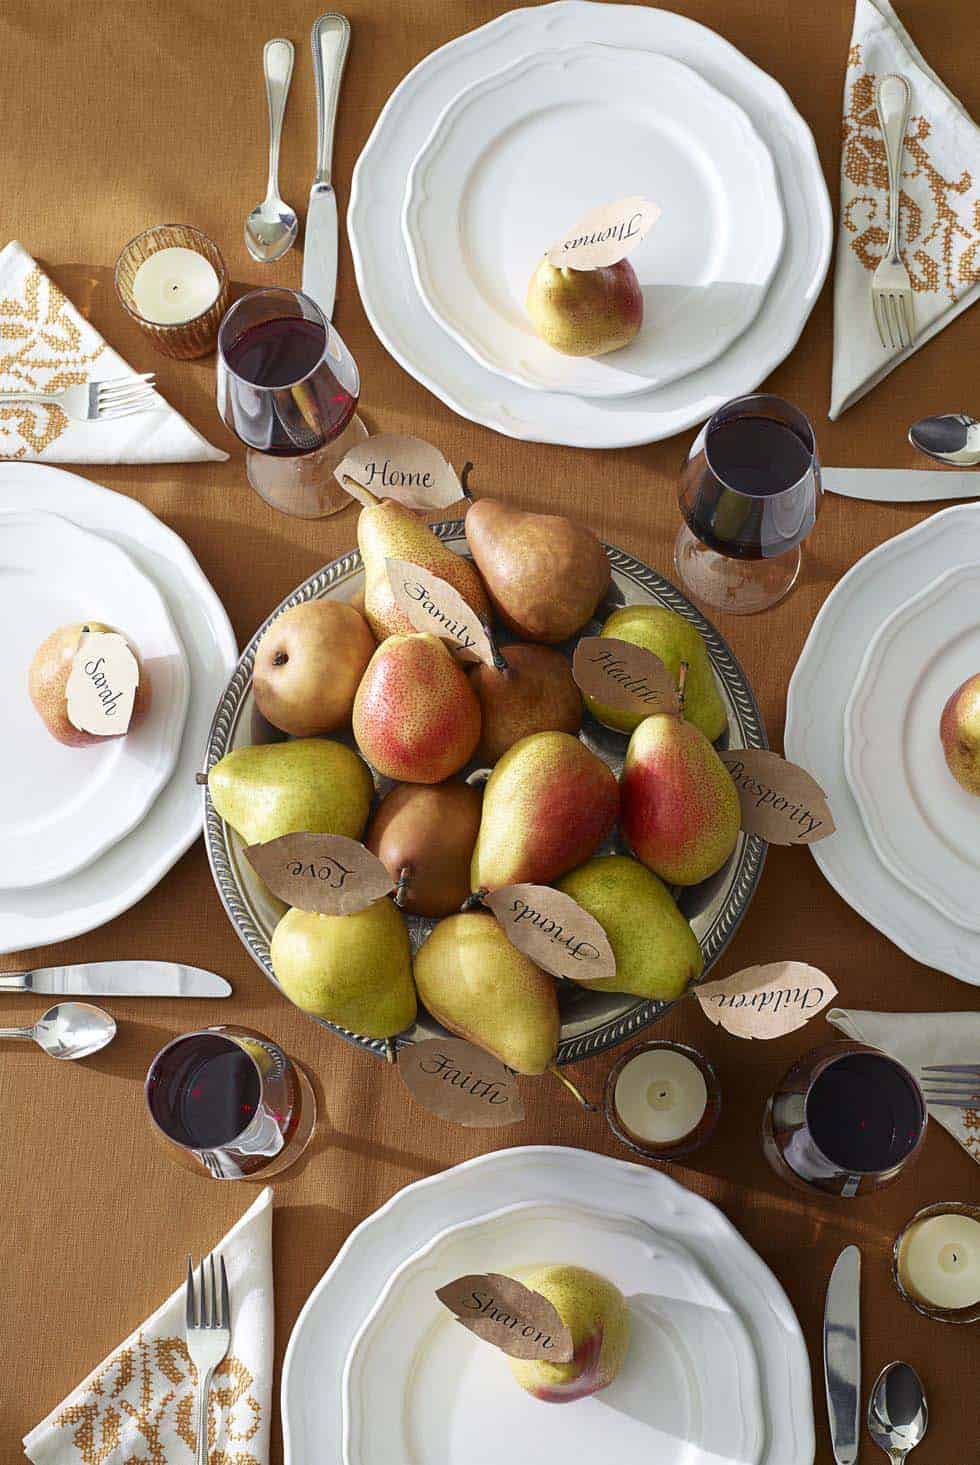 thanksgiving-decor-ideas-bowl-of-pears-centerpiece